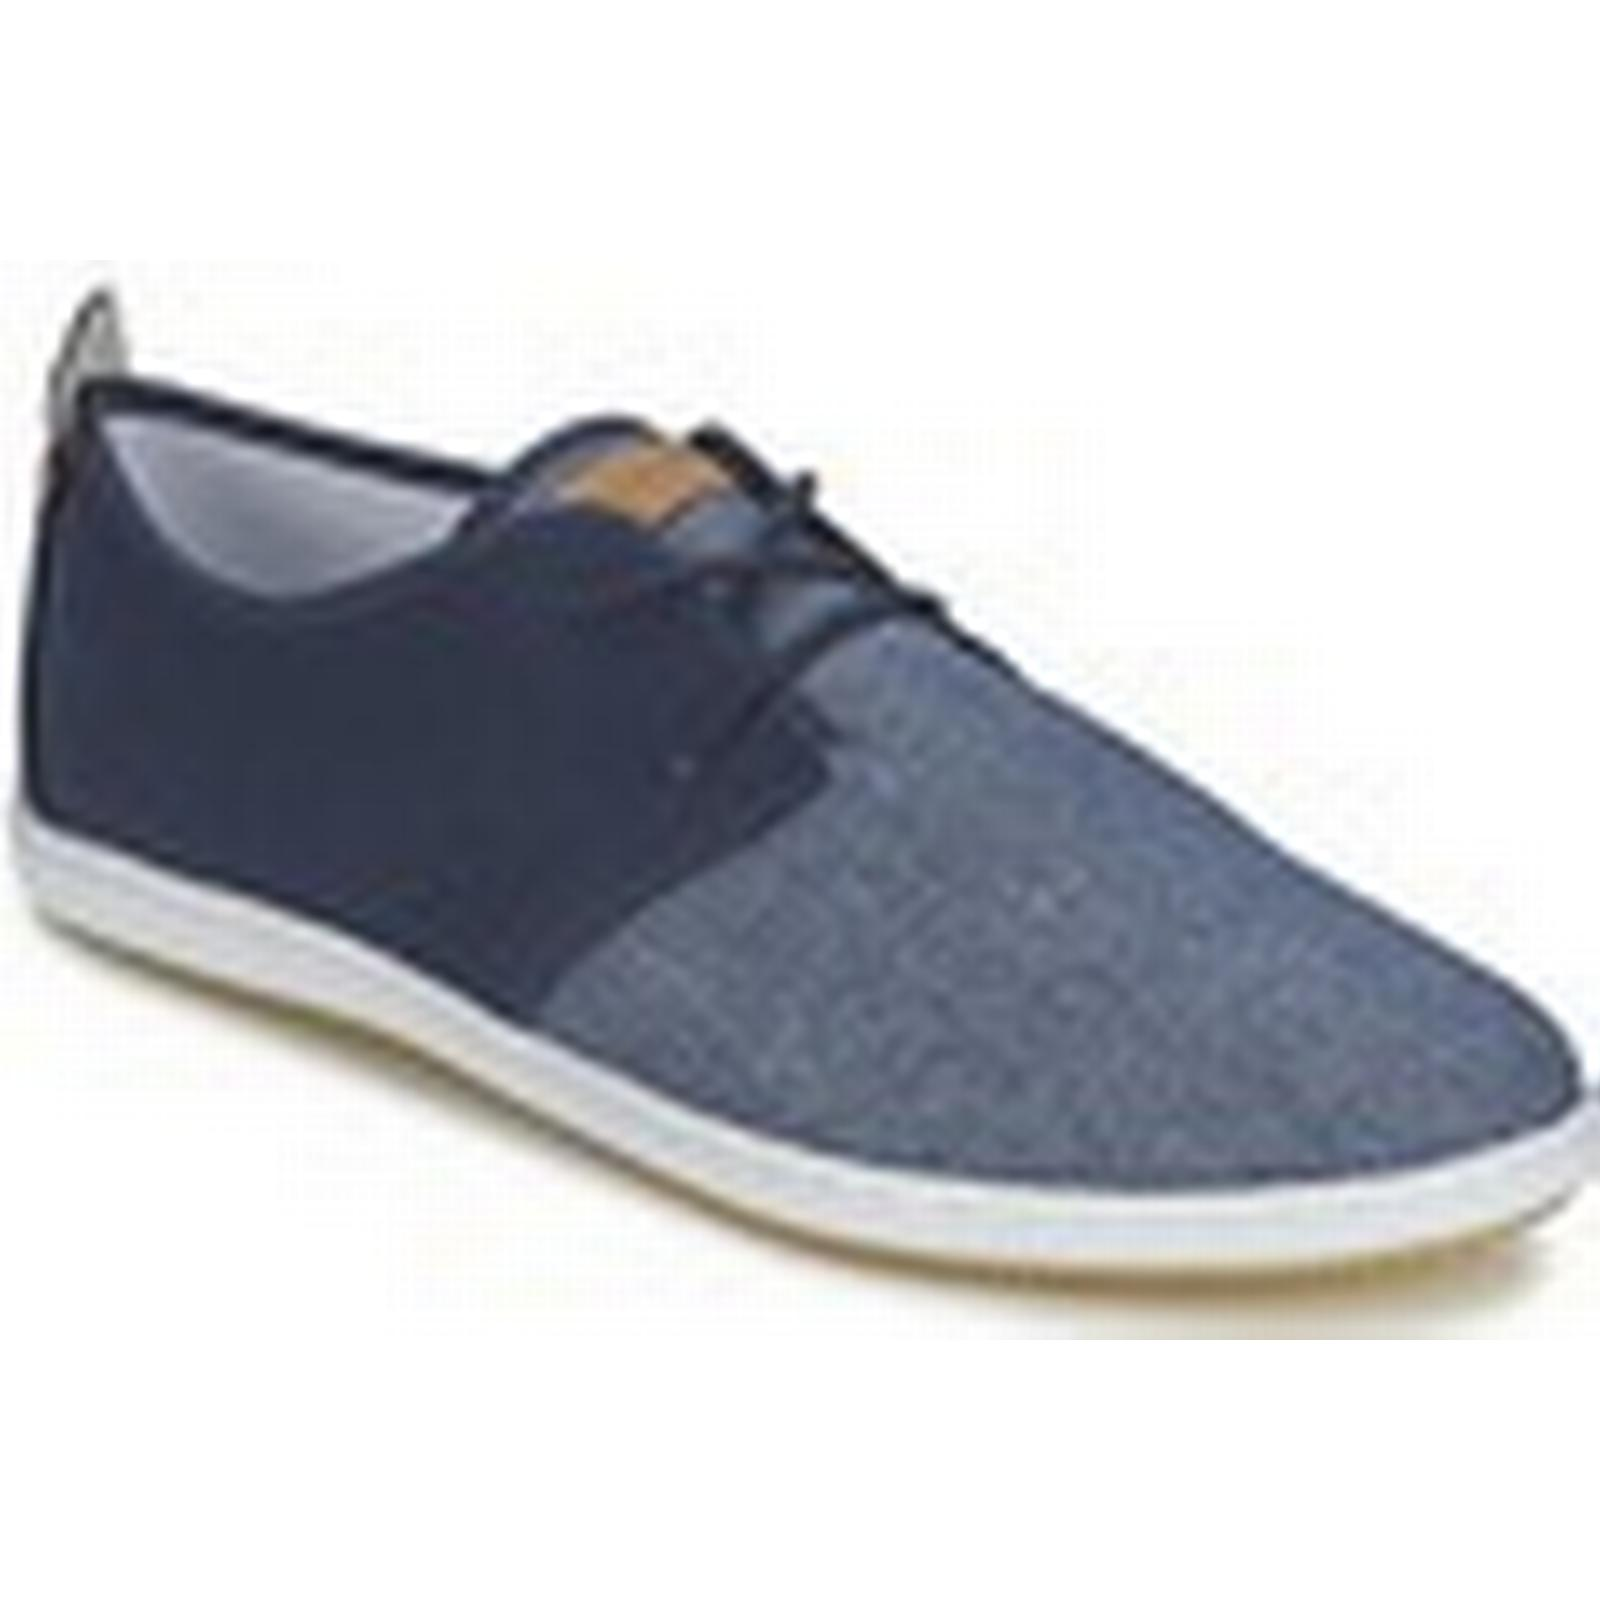 lafeyt marte chambray chambray chambray hommes & #  27; s Chaussure s (formateurs) en bleu d2aded